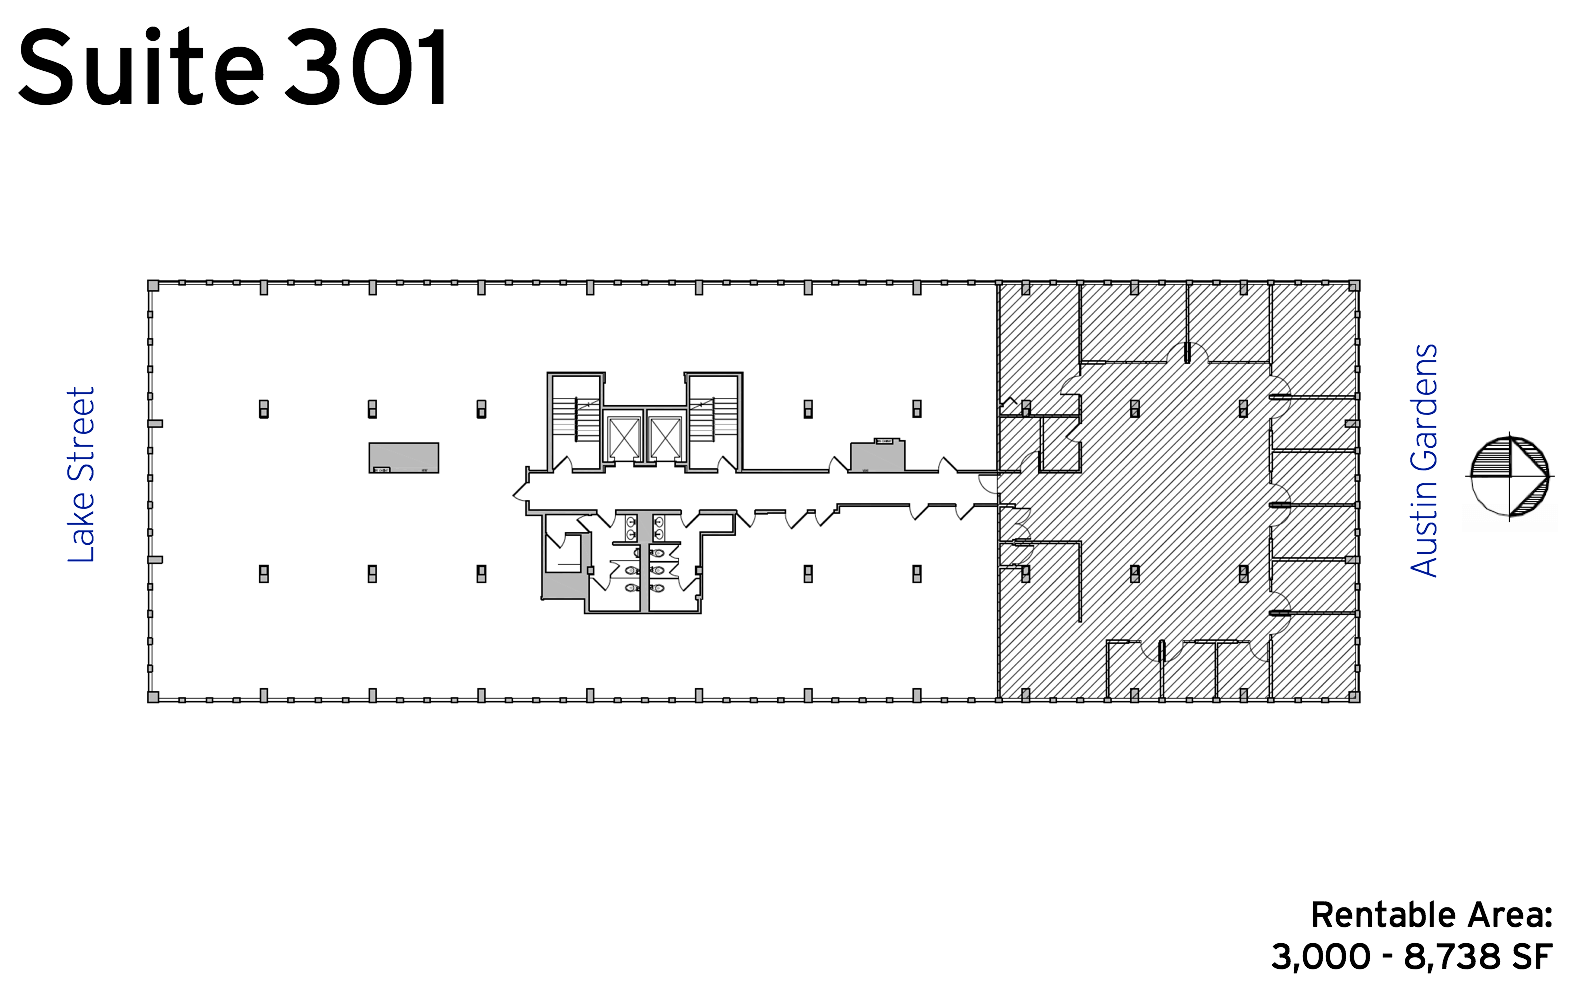 Suite 301 - 1010 Lake Street available office space floor plan